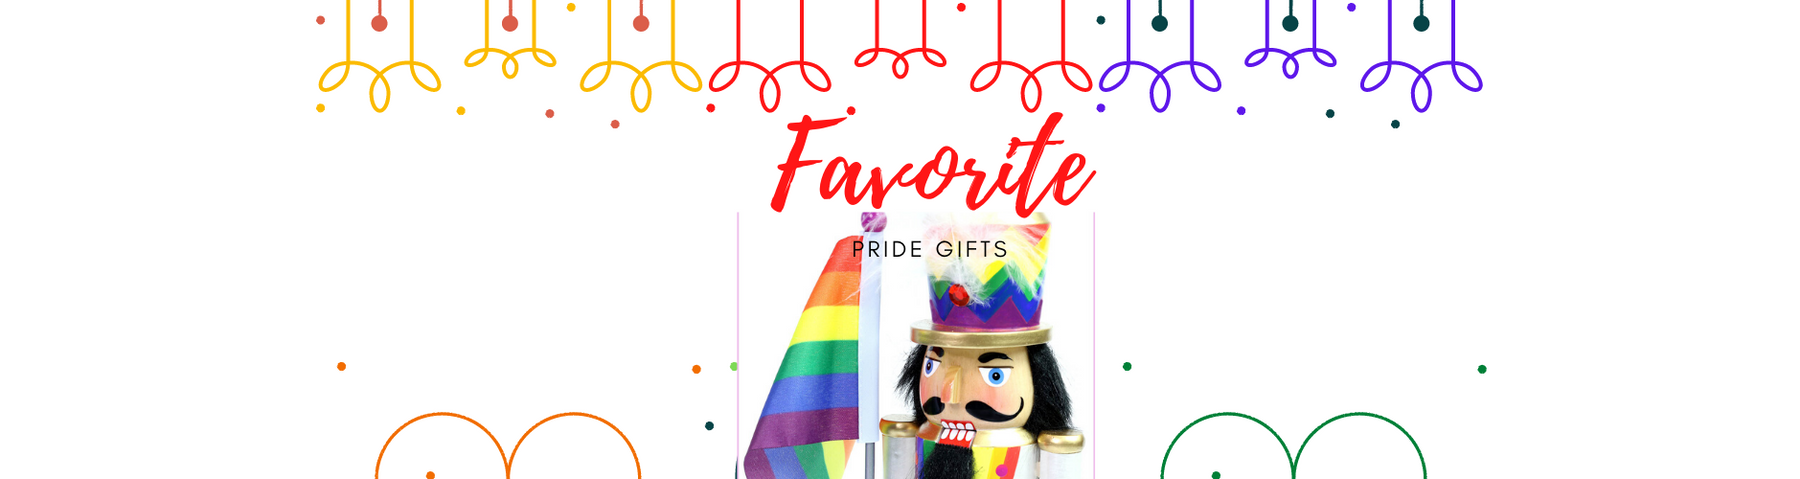 Favorite Pride Gifts